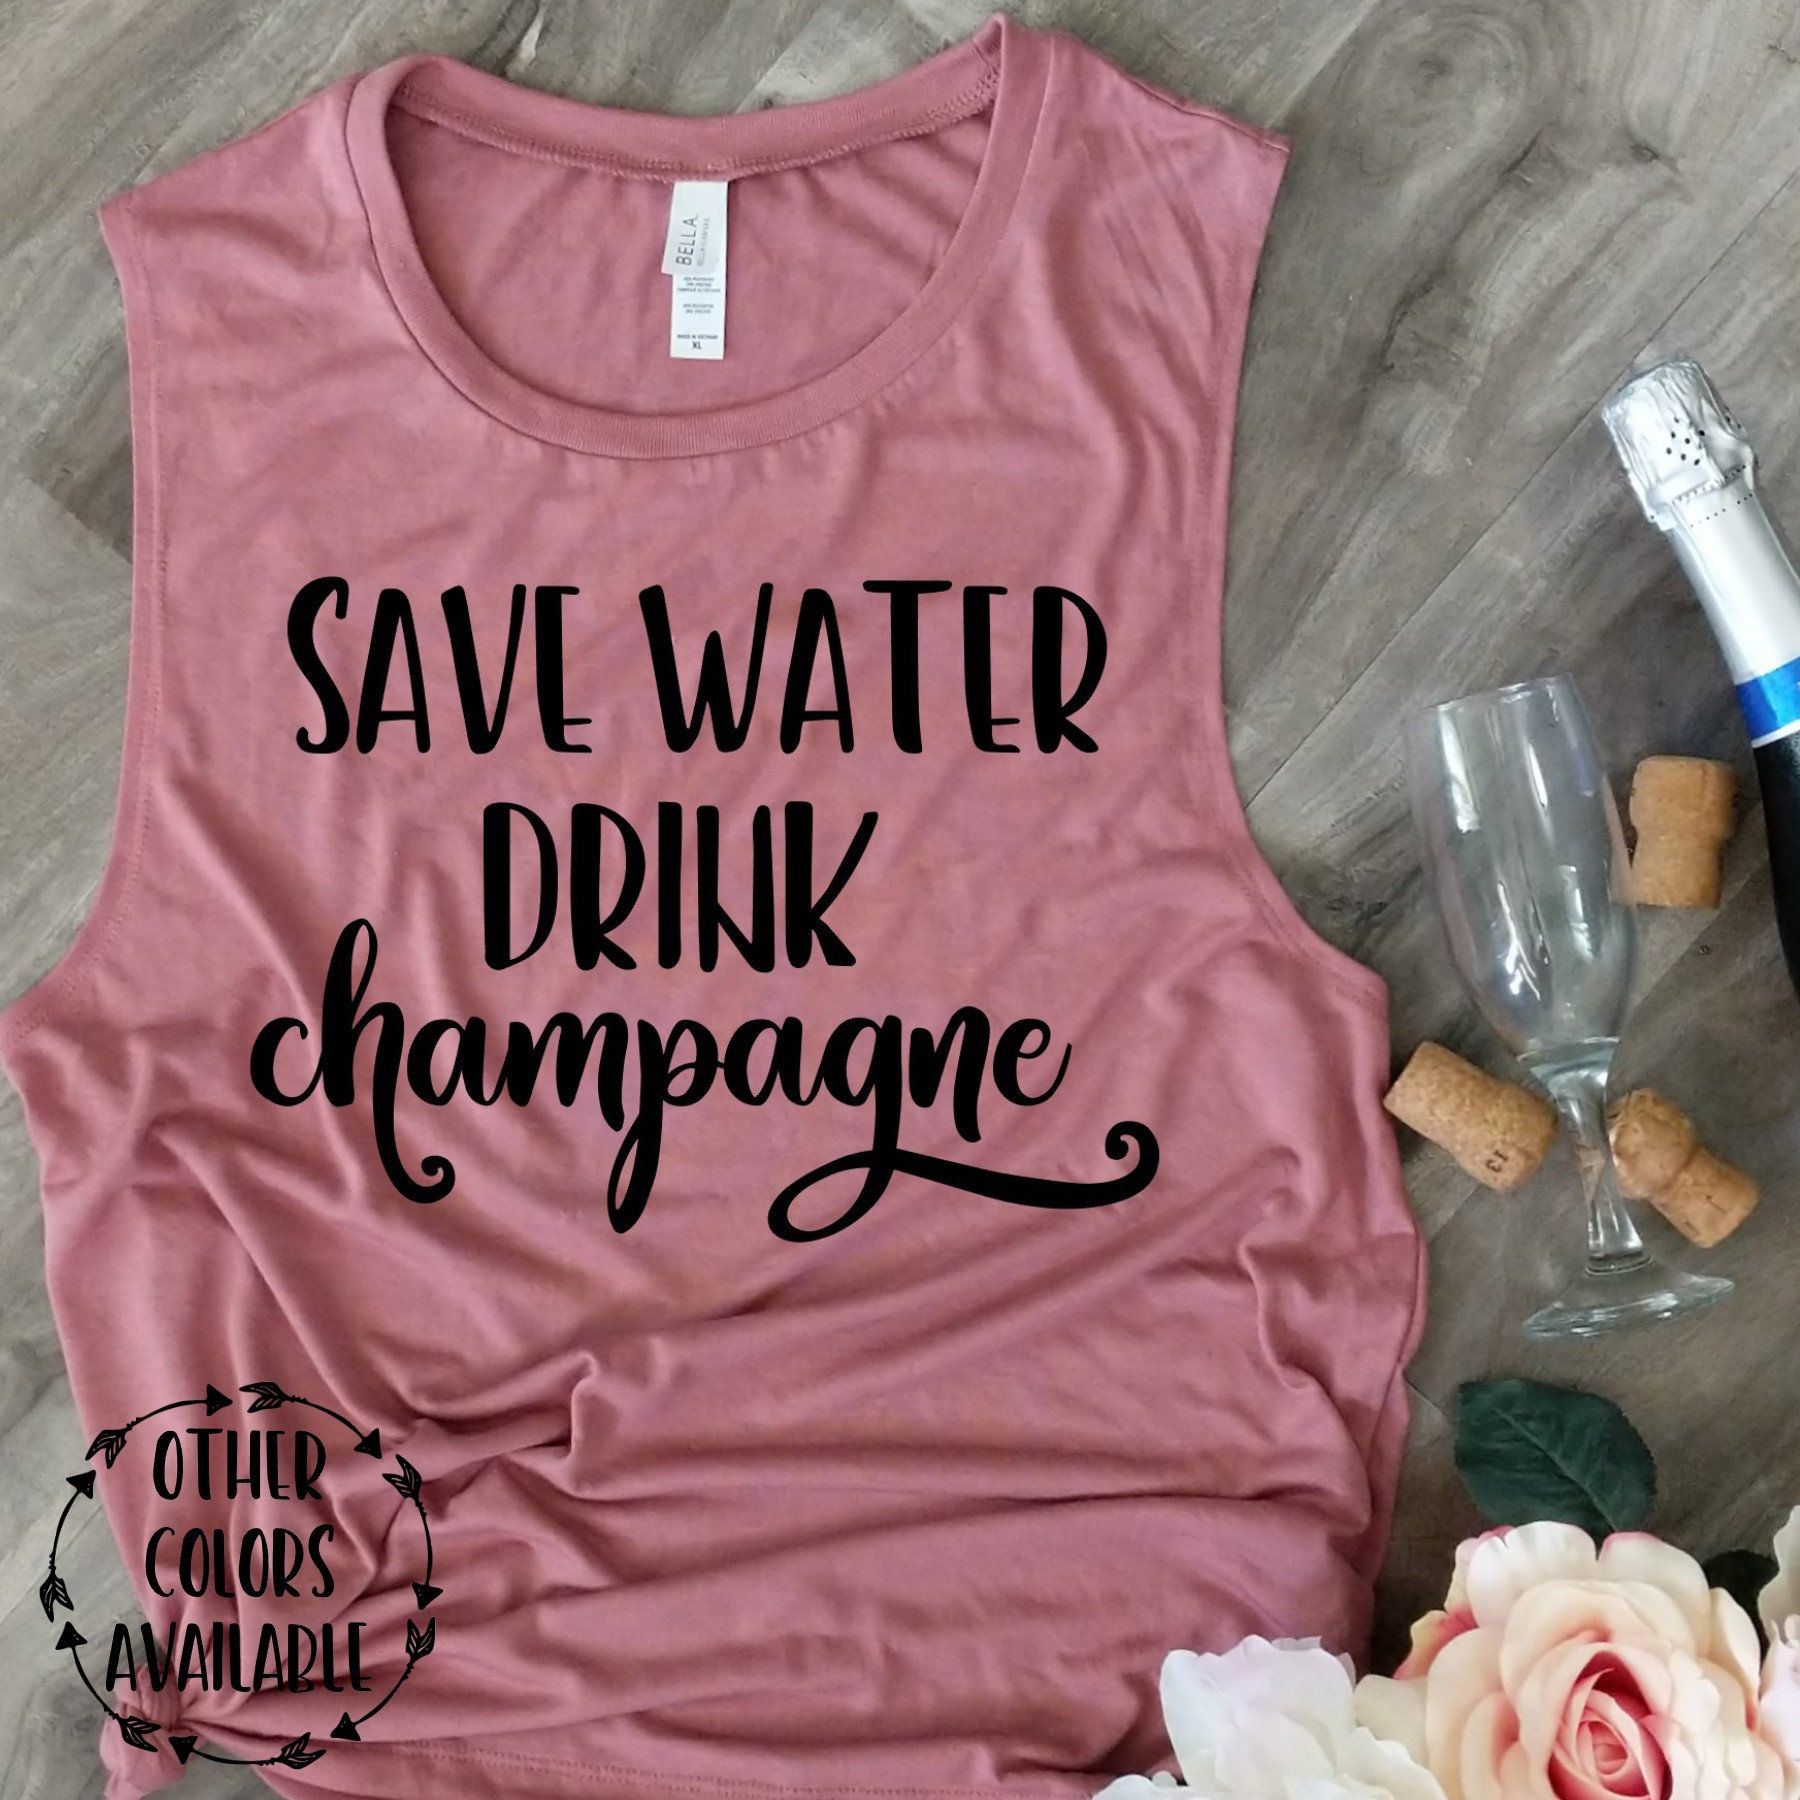 Save Water Drink Champagne Wine Shirt Funny Drinking Shirt Etsy Save Water Drink Champagne Funny Drinking Shirts Wine Shirts Funny